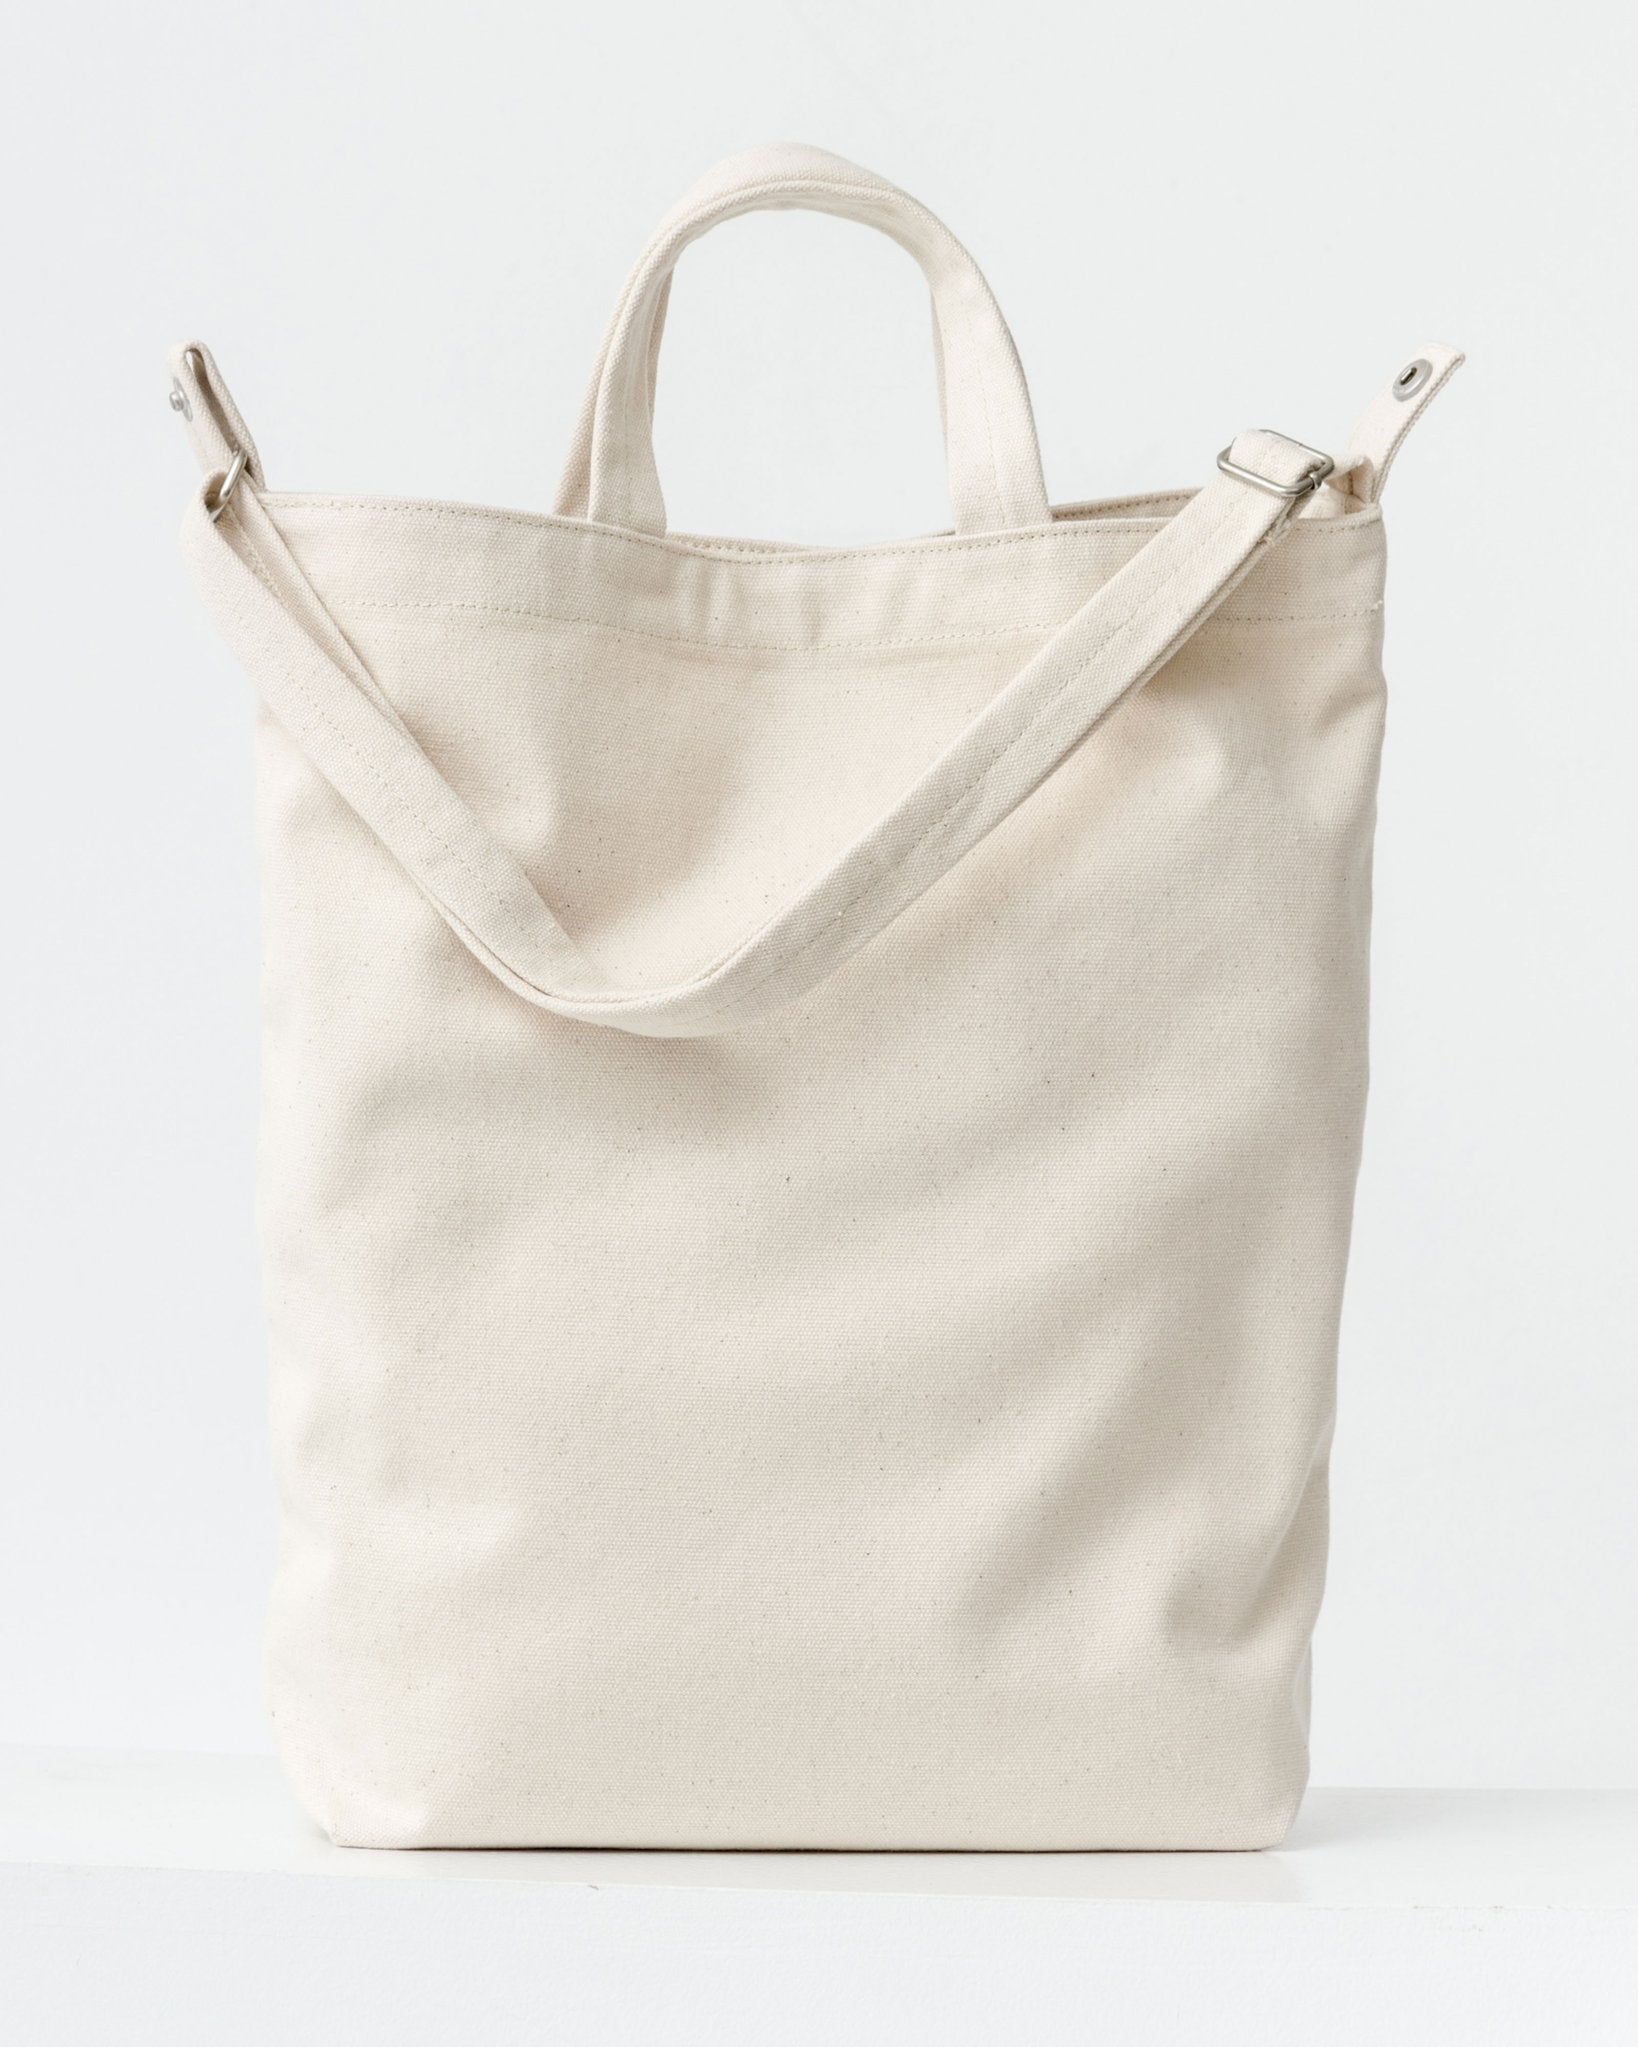 Duck Bag in Natural